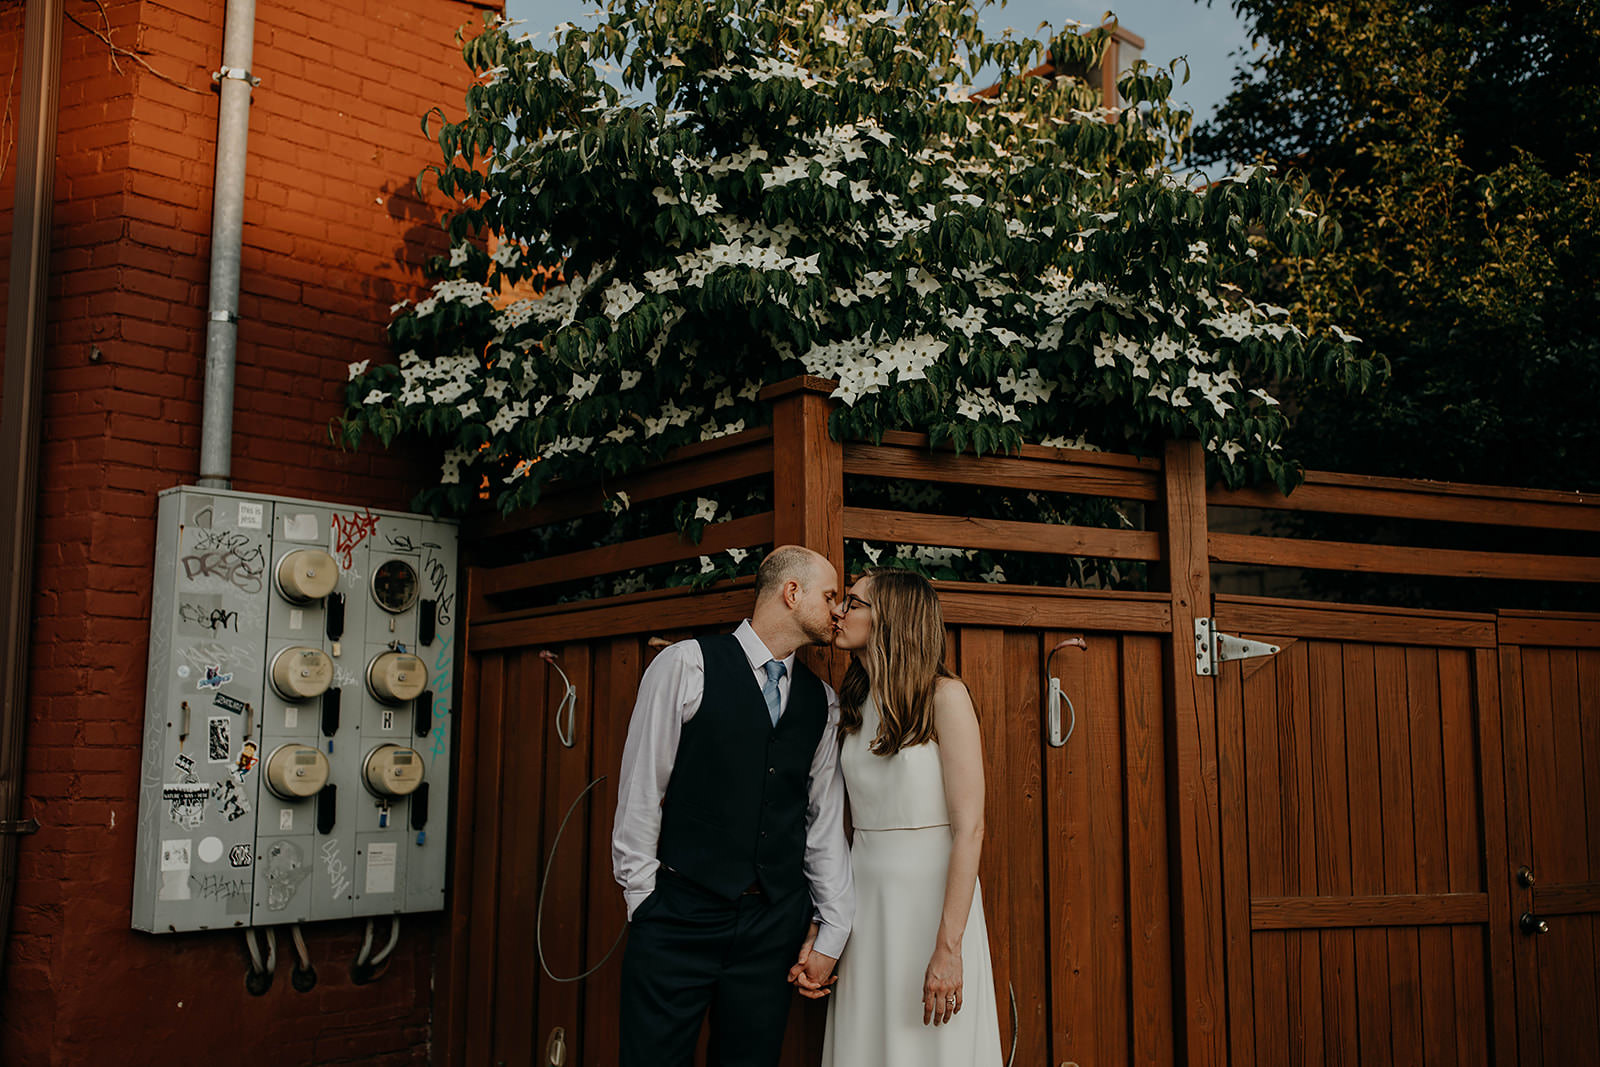 Cincinnati Wine bar wedding shawn and lindsay wedding photographer grace e jones 153.jpg